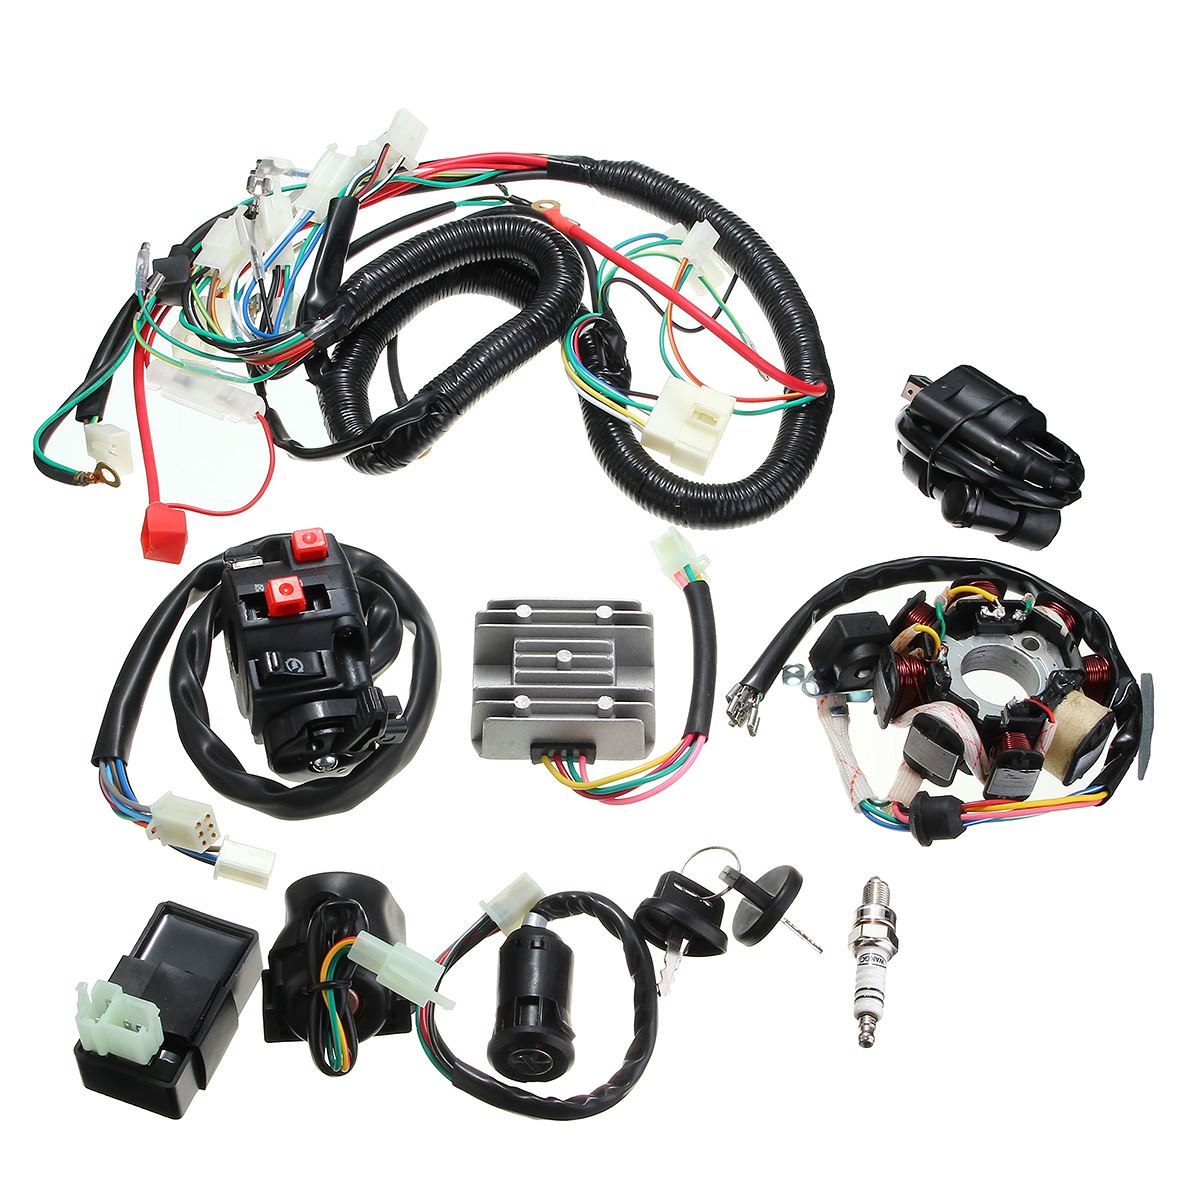 online get cheap stator wire com alibaba group 1 set quad electric cdi coil wire harness stator assembly wiring set for 125 150 200 250cc push rod engine